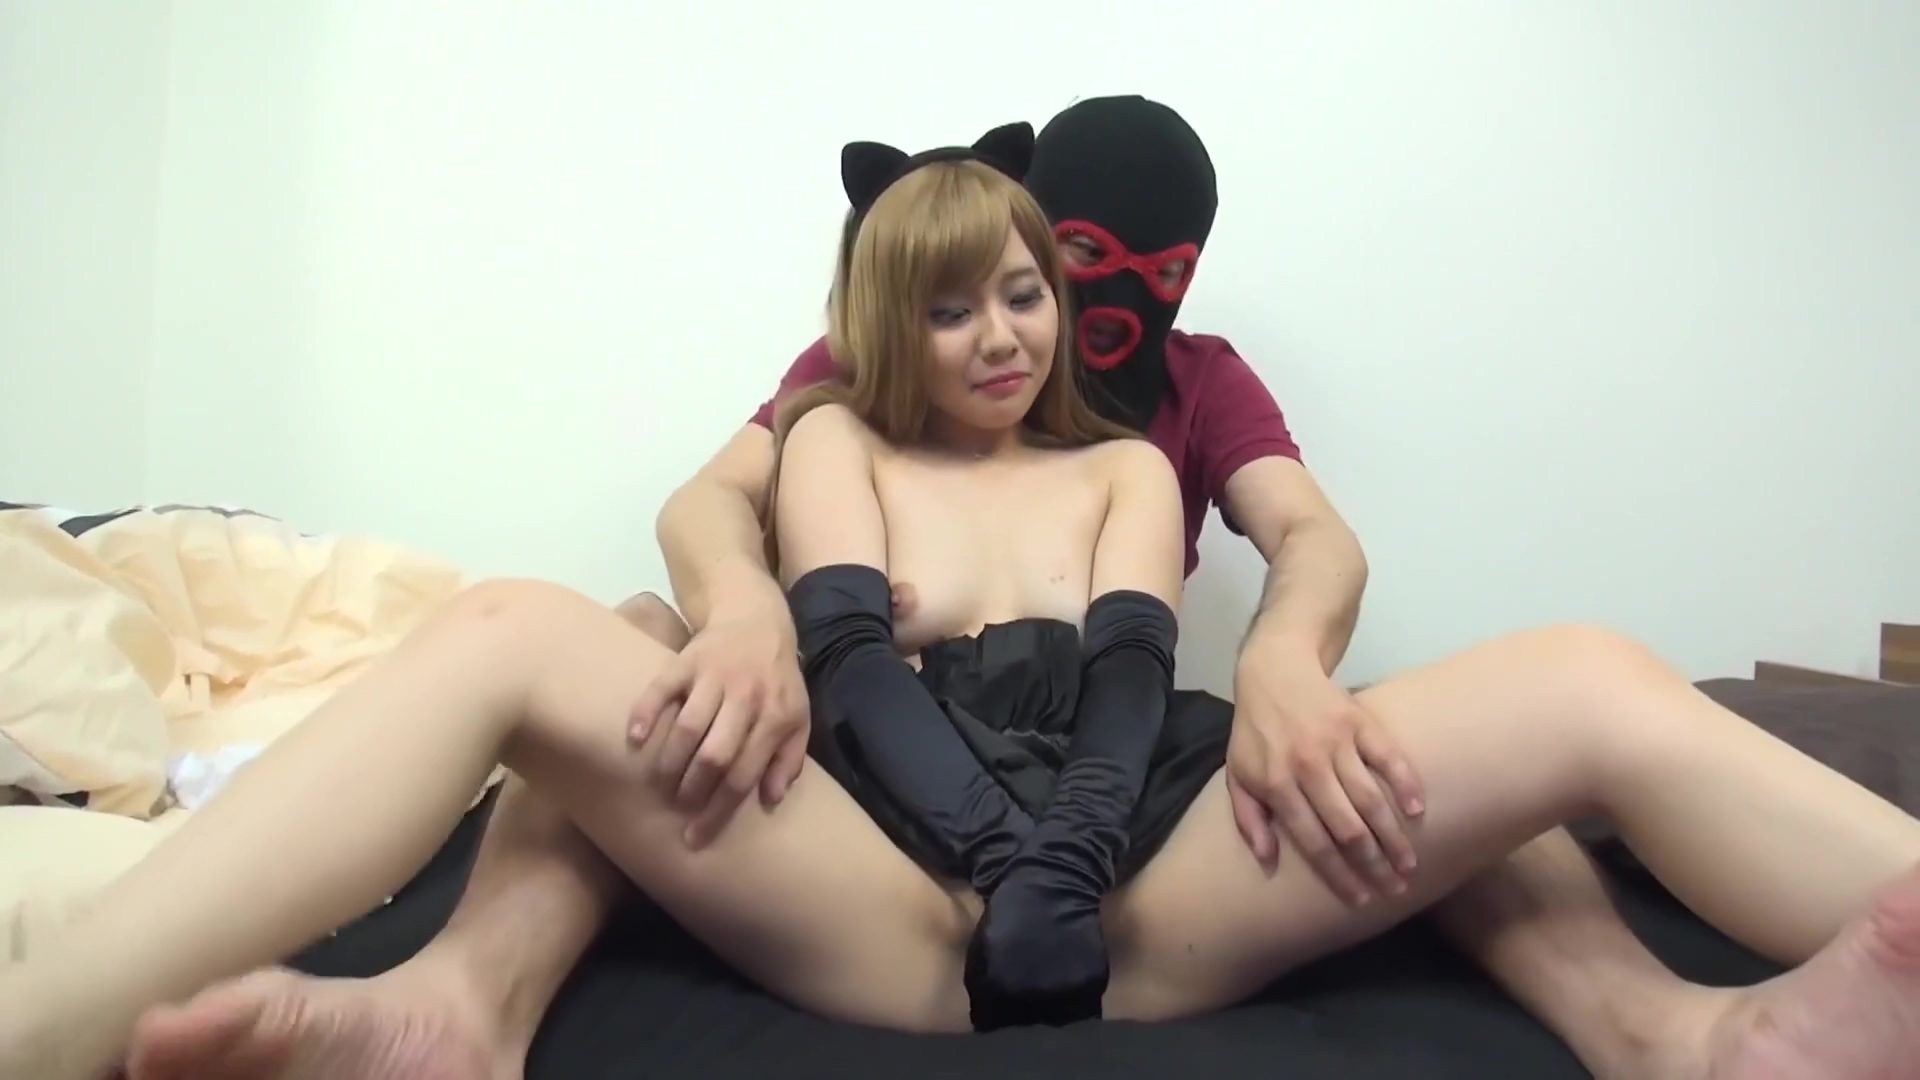 I Want To Appear In Av Creating A Raw Chat With A Cute Chat Lady In Yancha